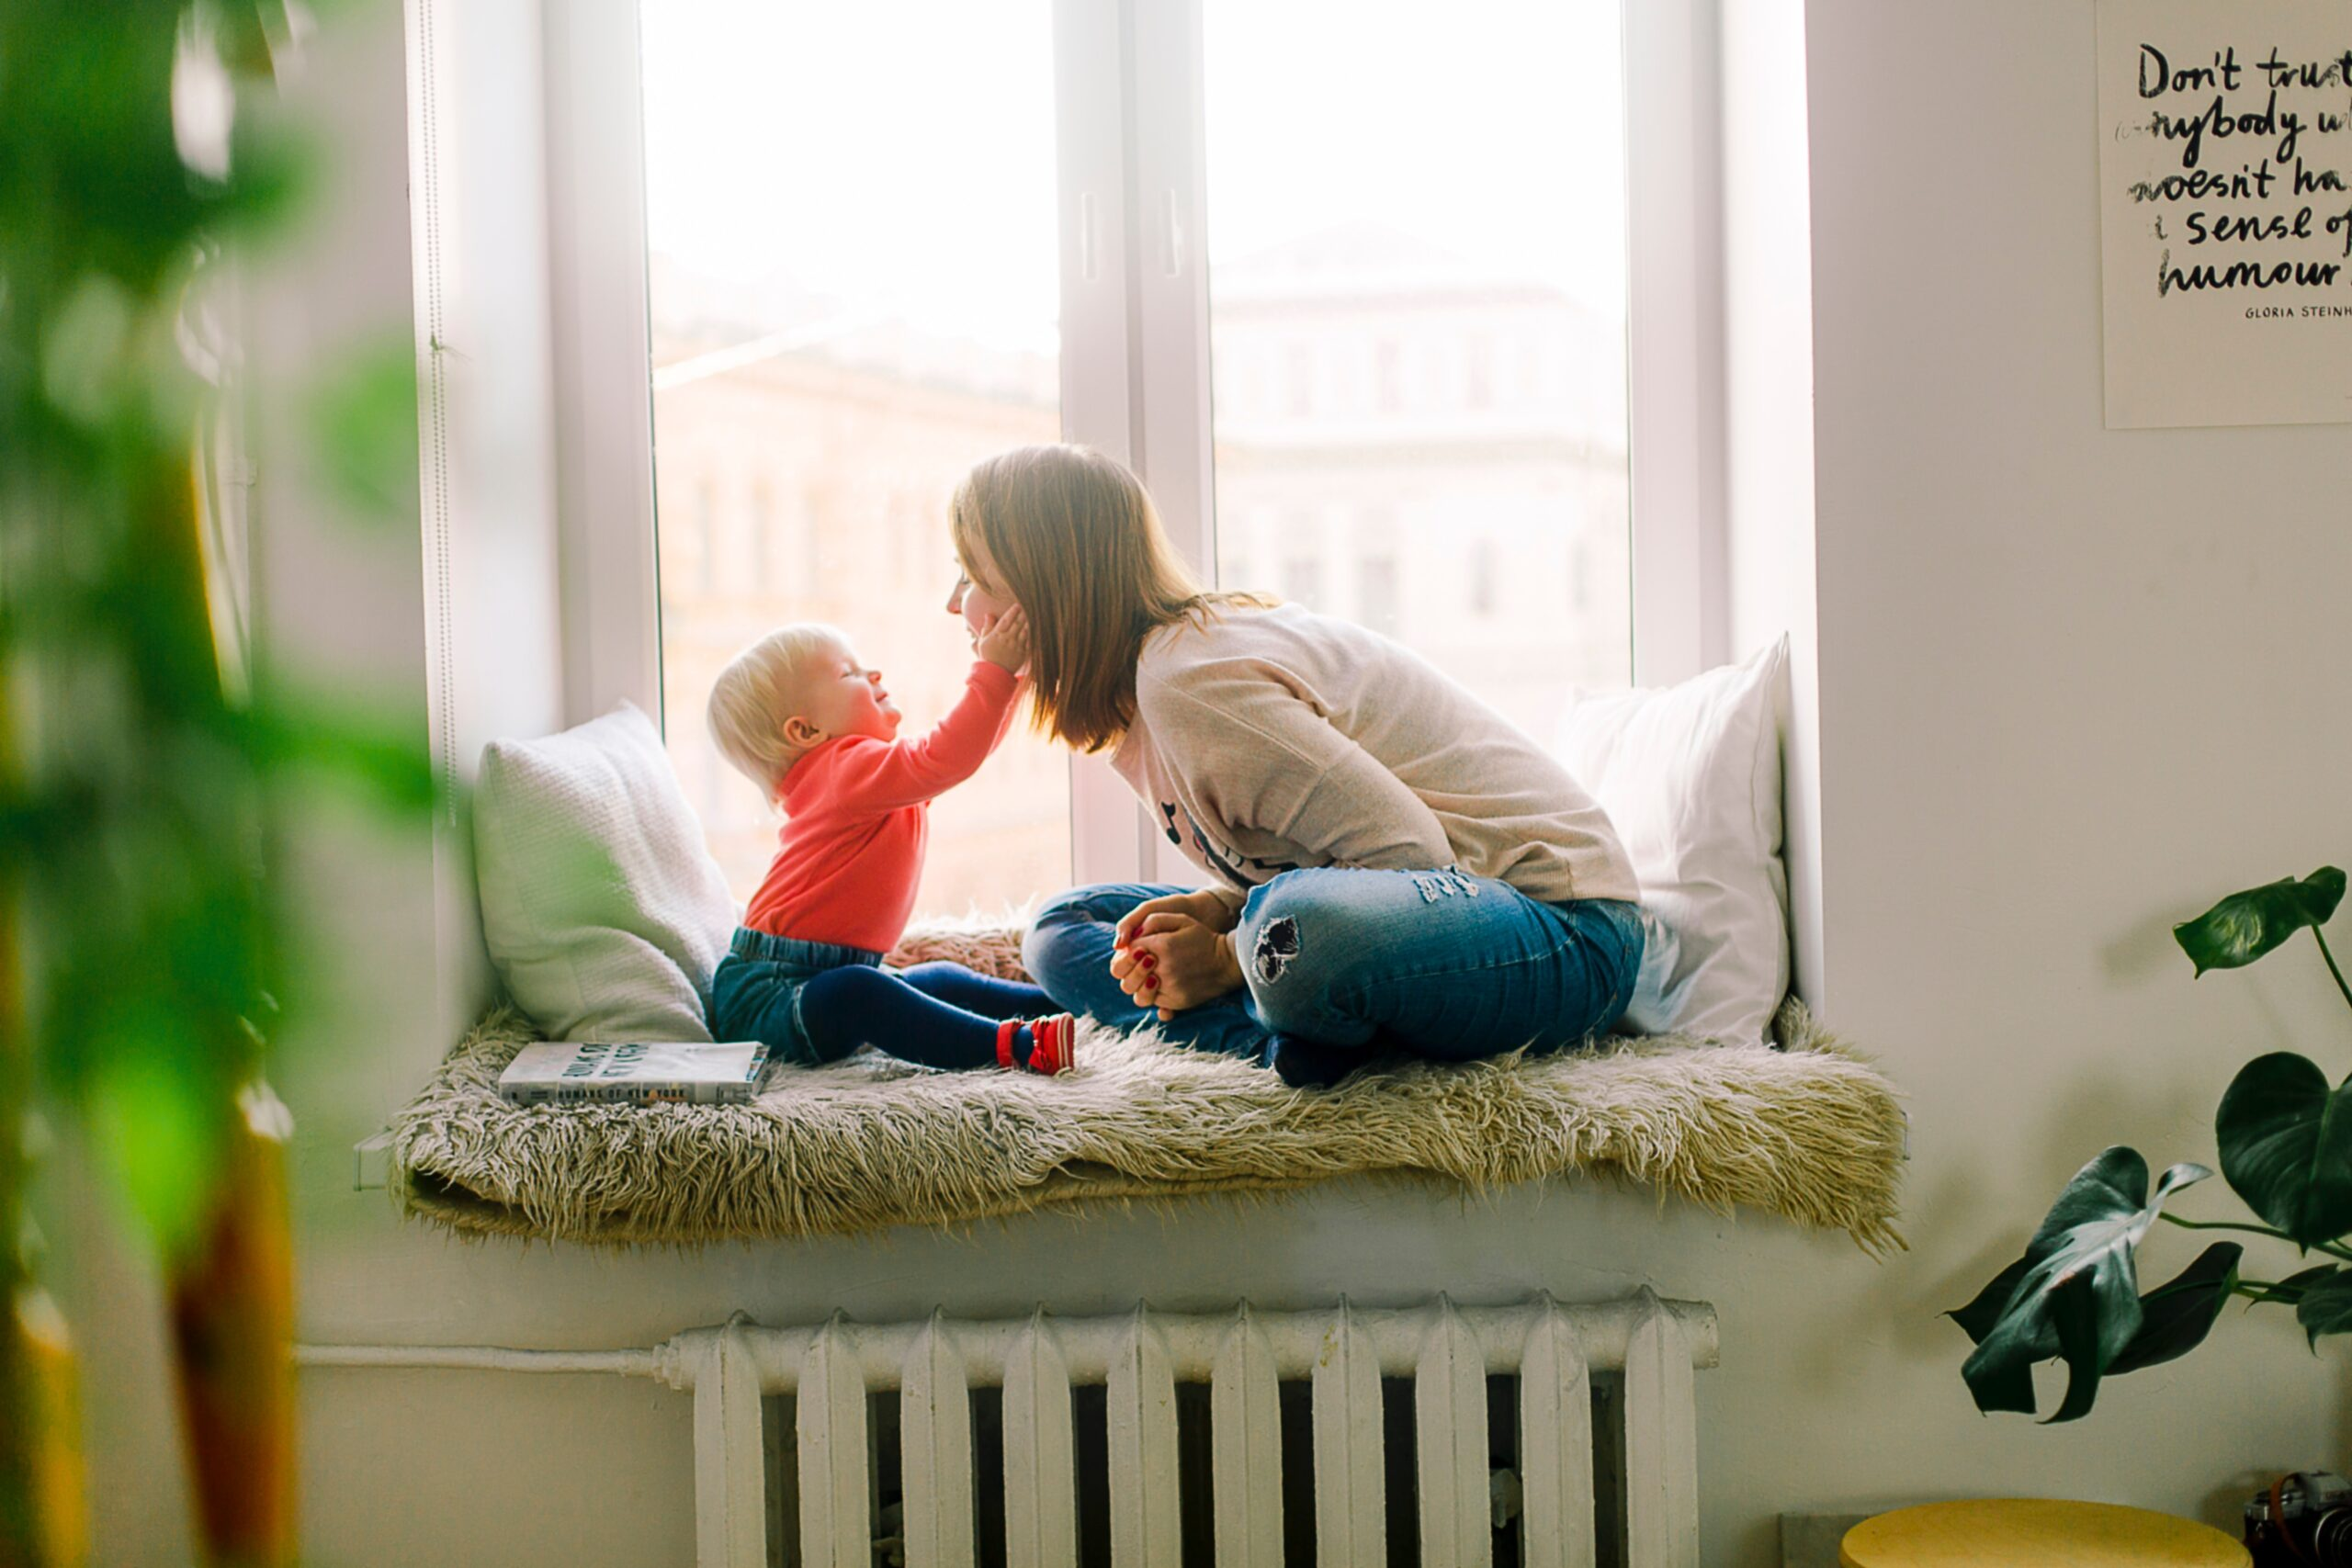 image of mom with child staying calm